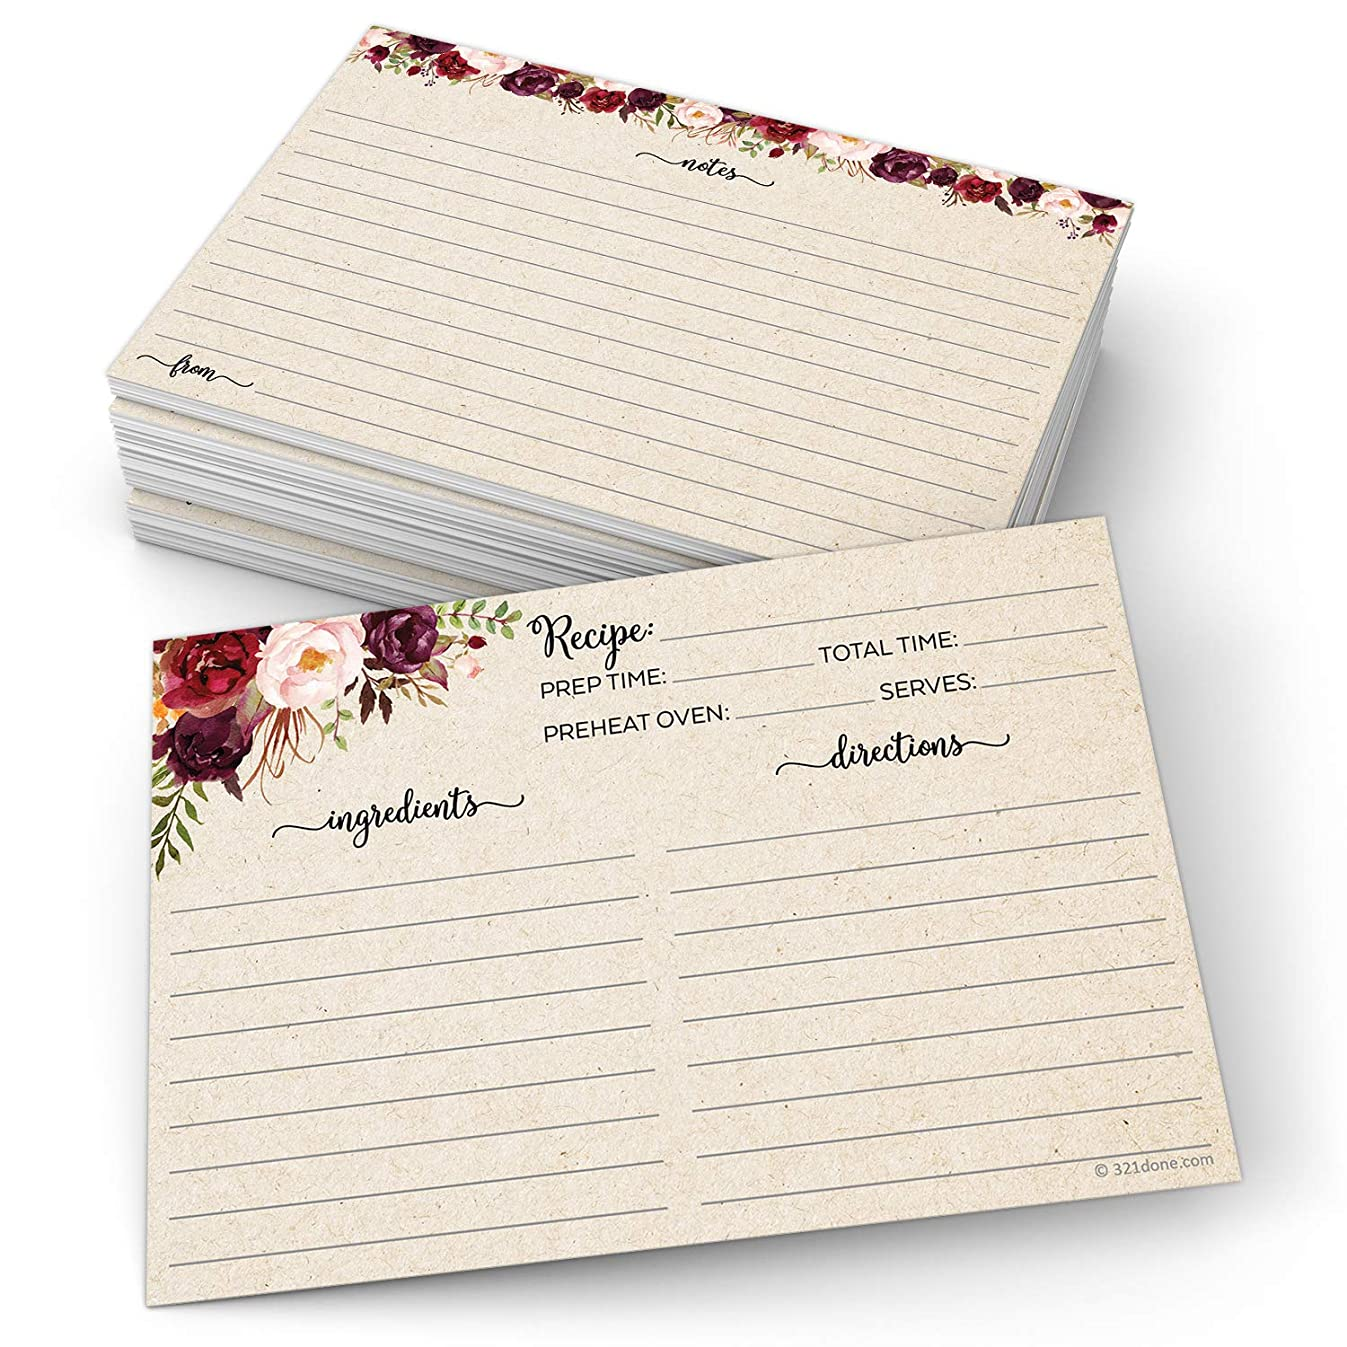 321Done Floral Recipe Cards (Set of 50) Rustic Large 4x6 - Double Sided Premium Card Stock - Made in USA - Dark Red Watercolor Roses, Kraft Tan Notes From